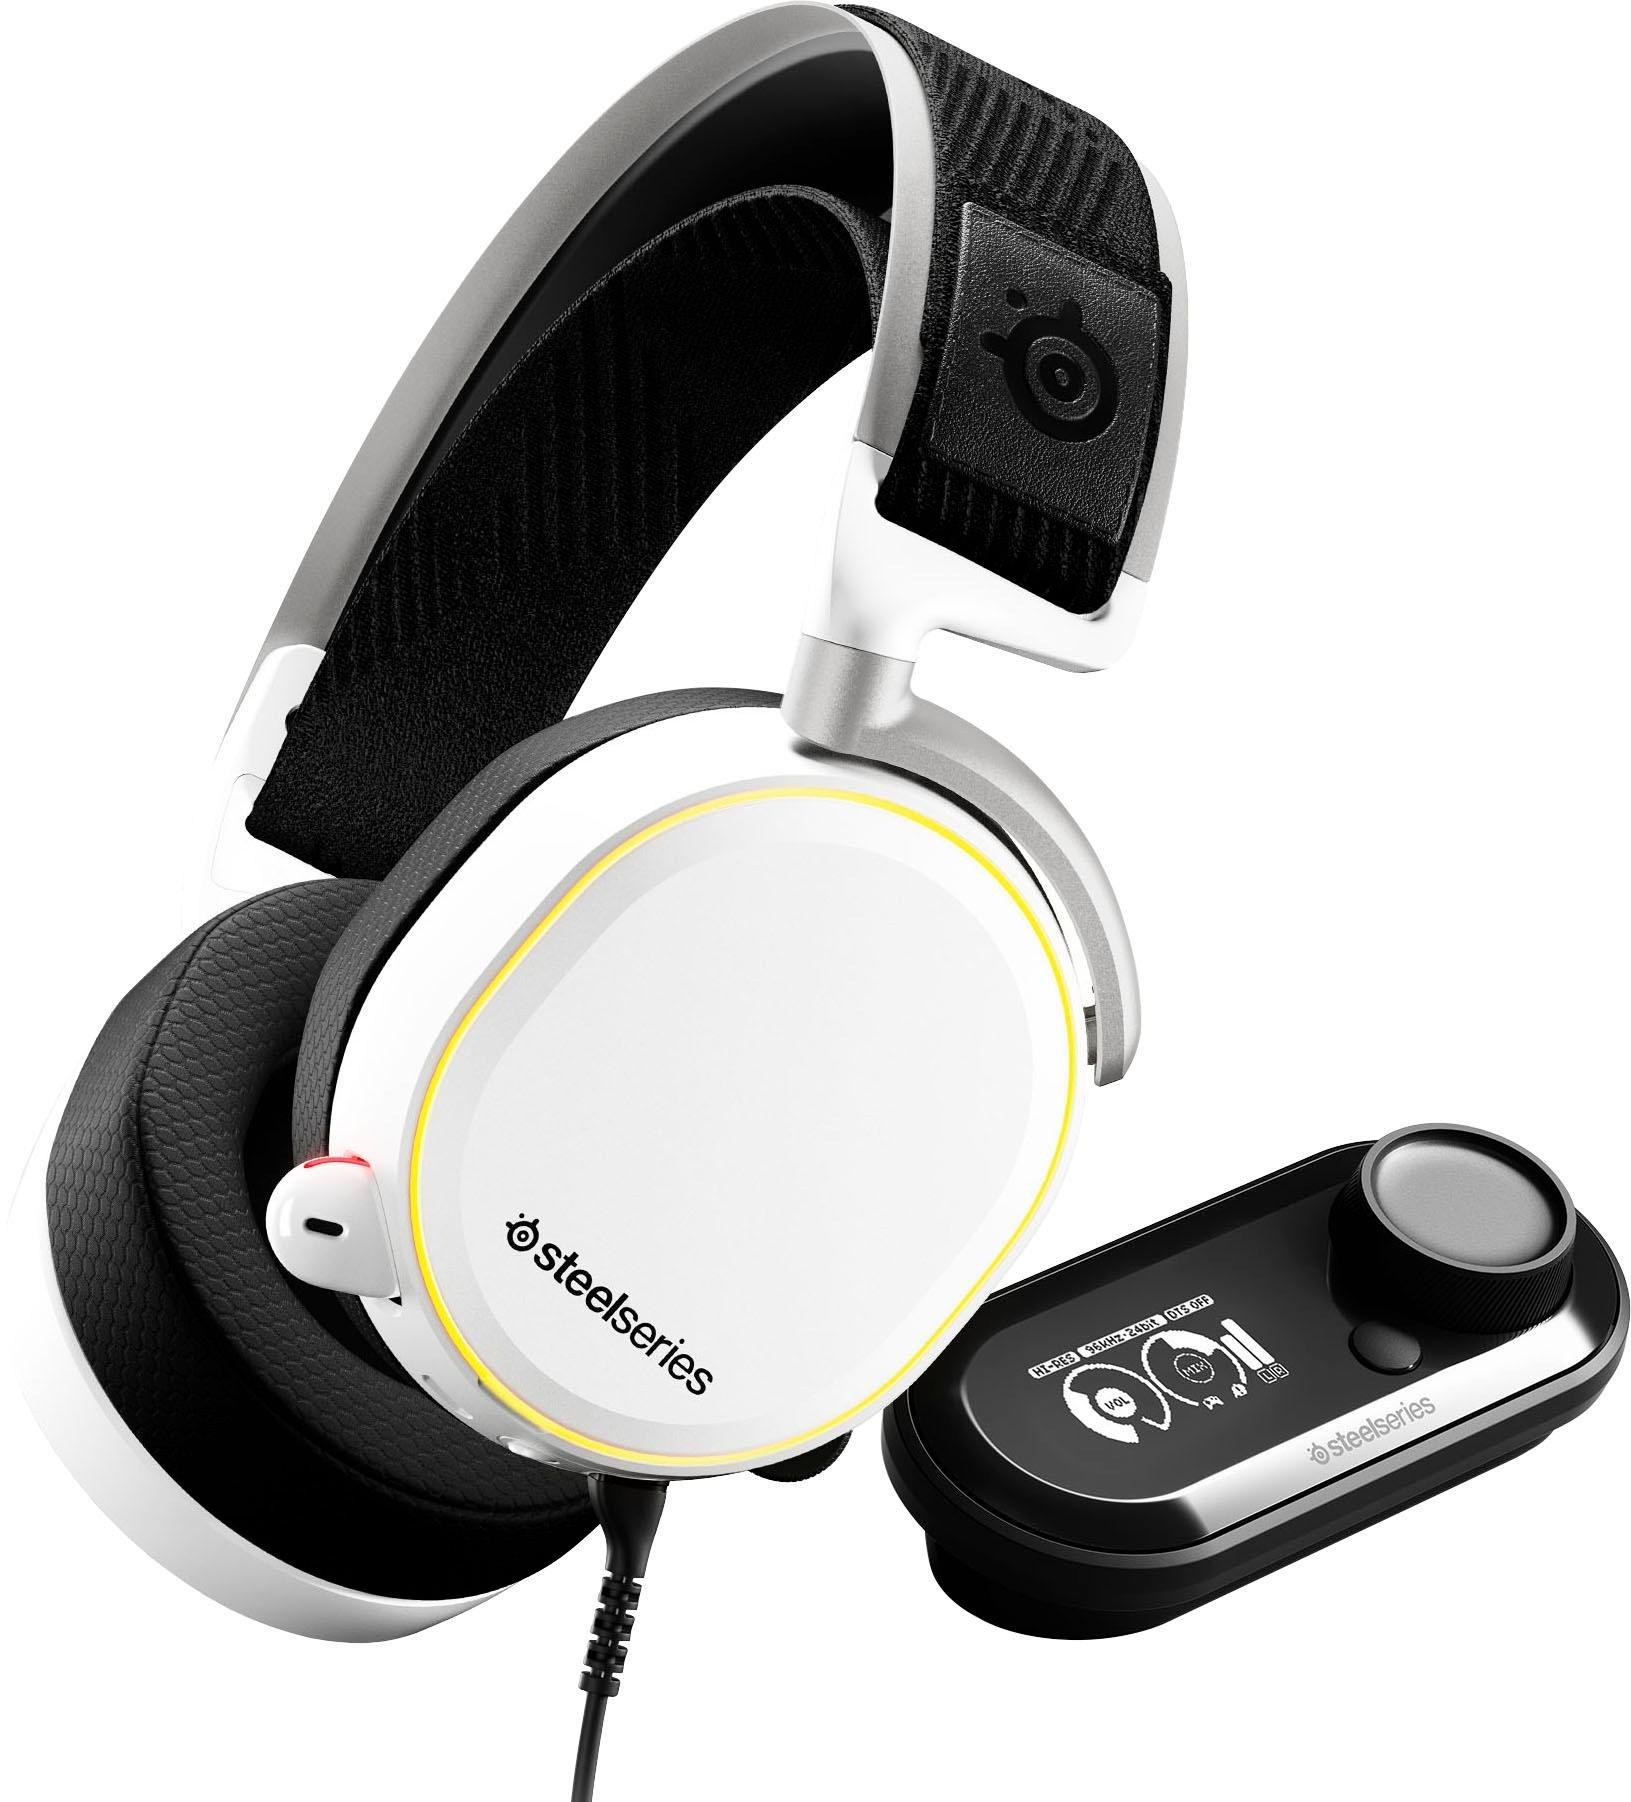 Steelseries »Arctis Pro + GameDAC White« gaming-headset (bluetooth, Hi-Res, Noise-Cancelling) - gratis ruilen op otto.nl